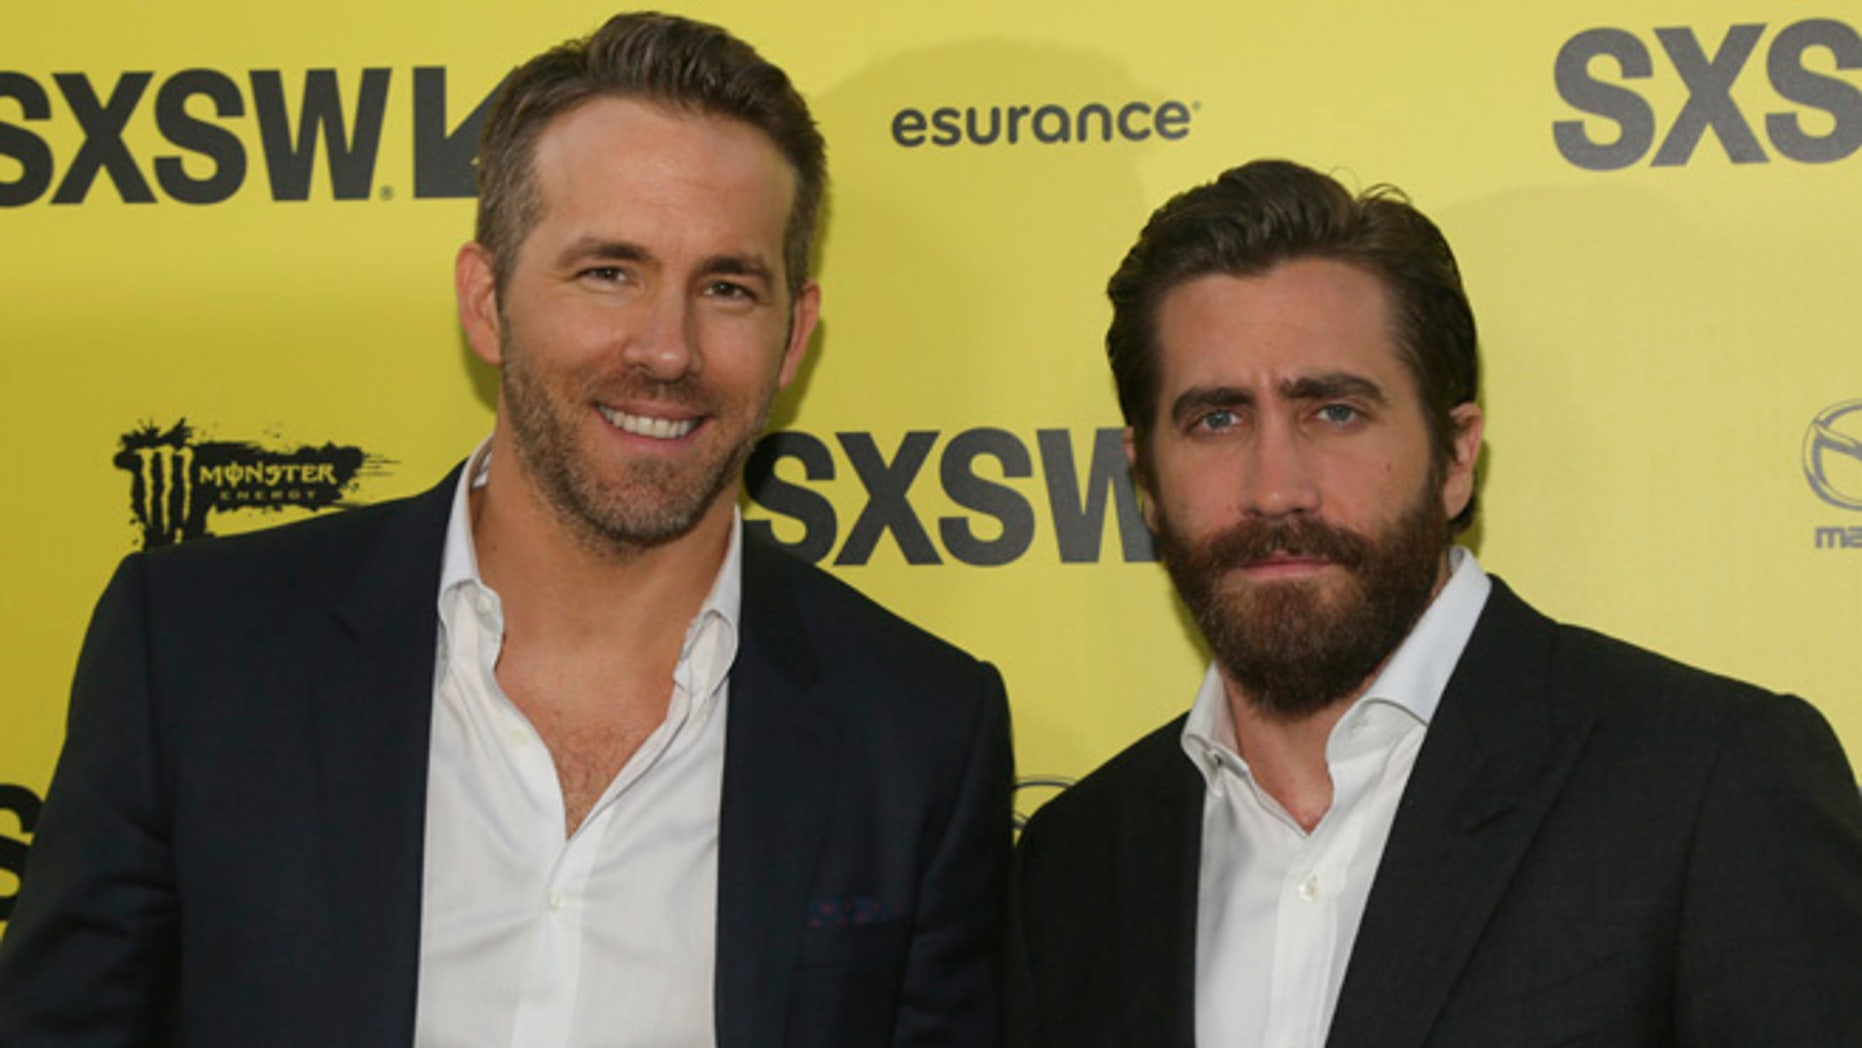 A bromance is brewing between Ryan Reynolds and Jake Gyllenhaal.